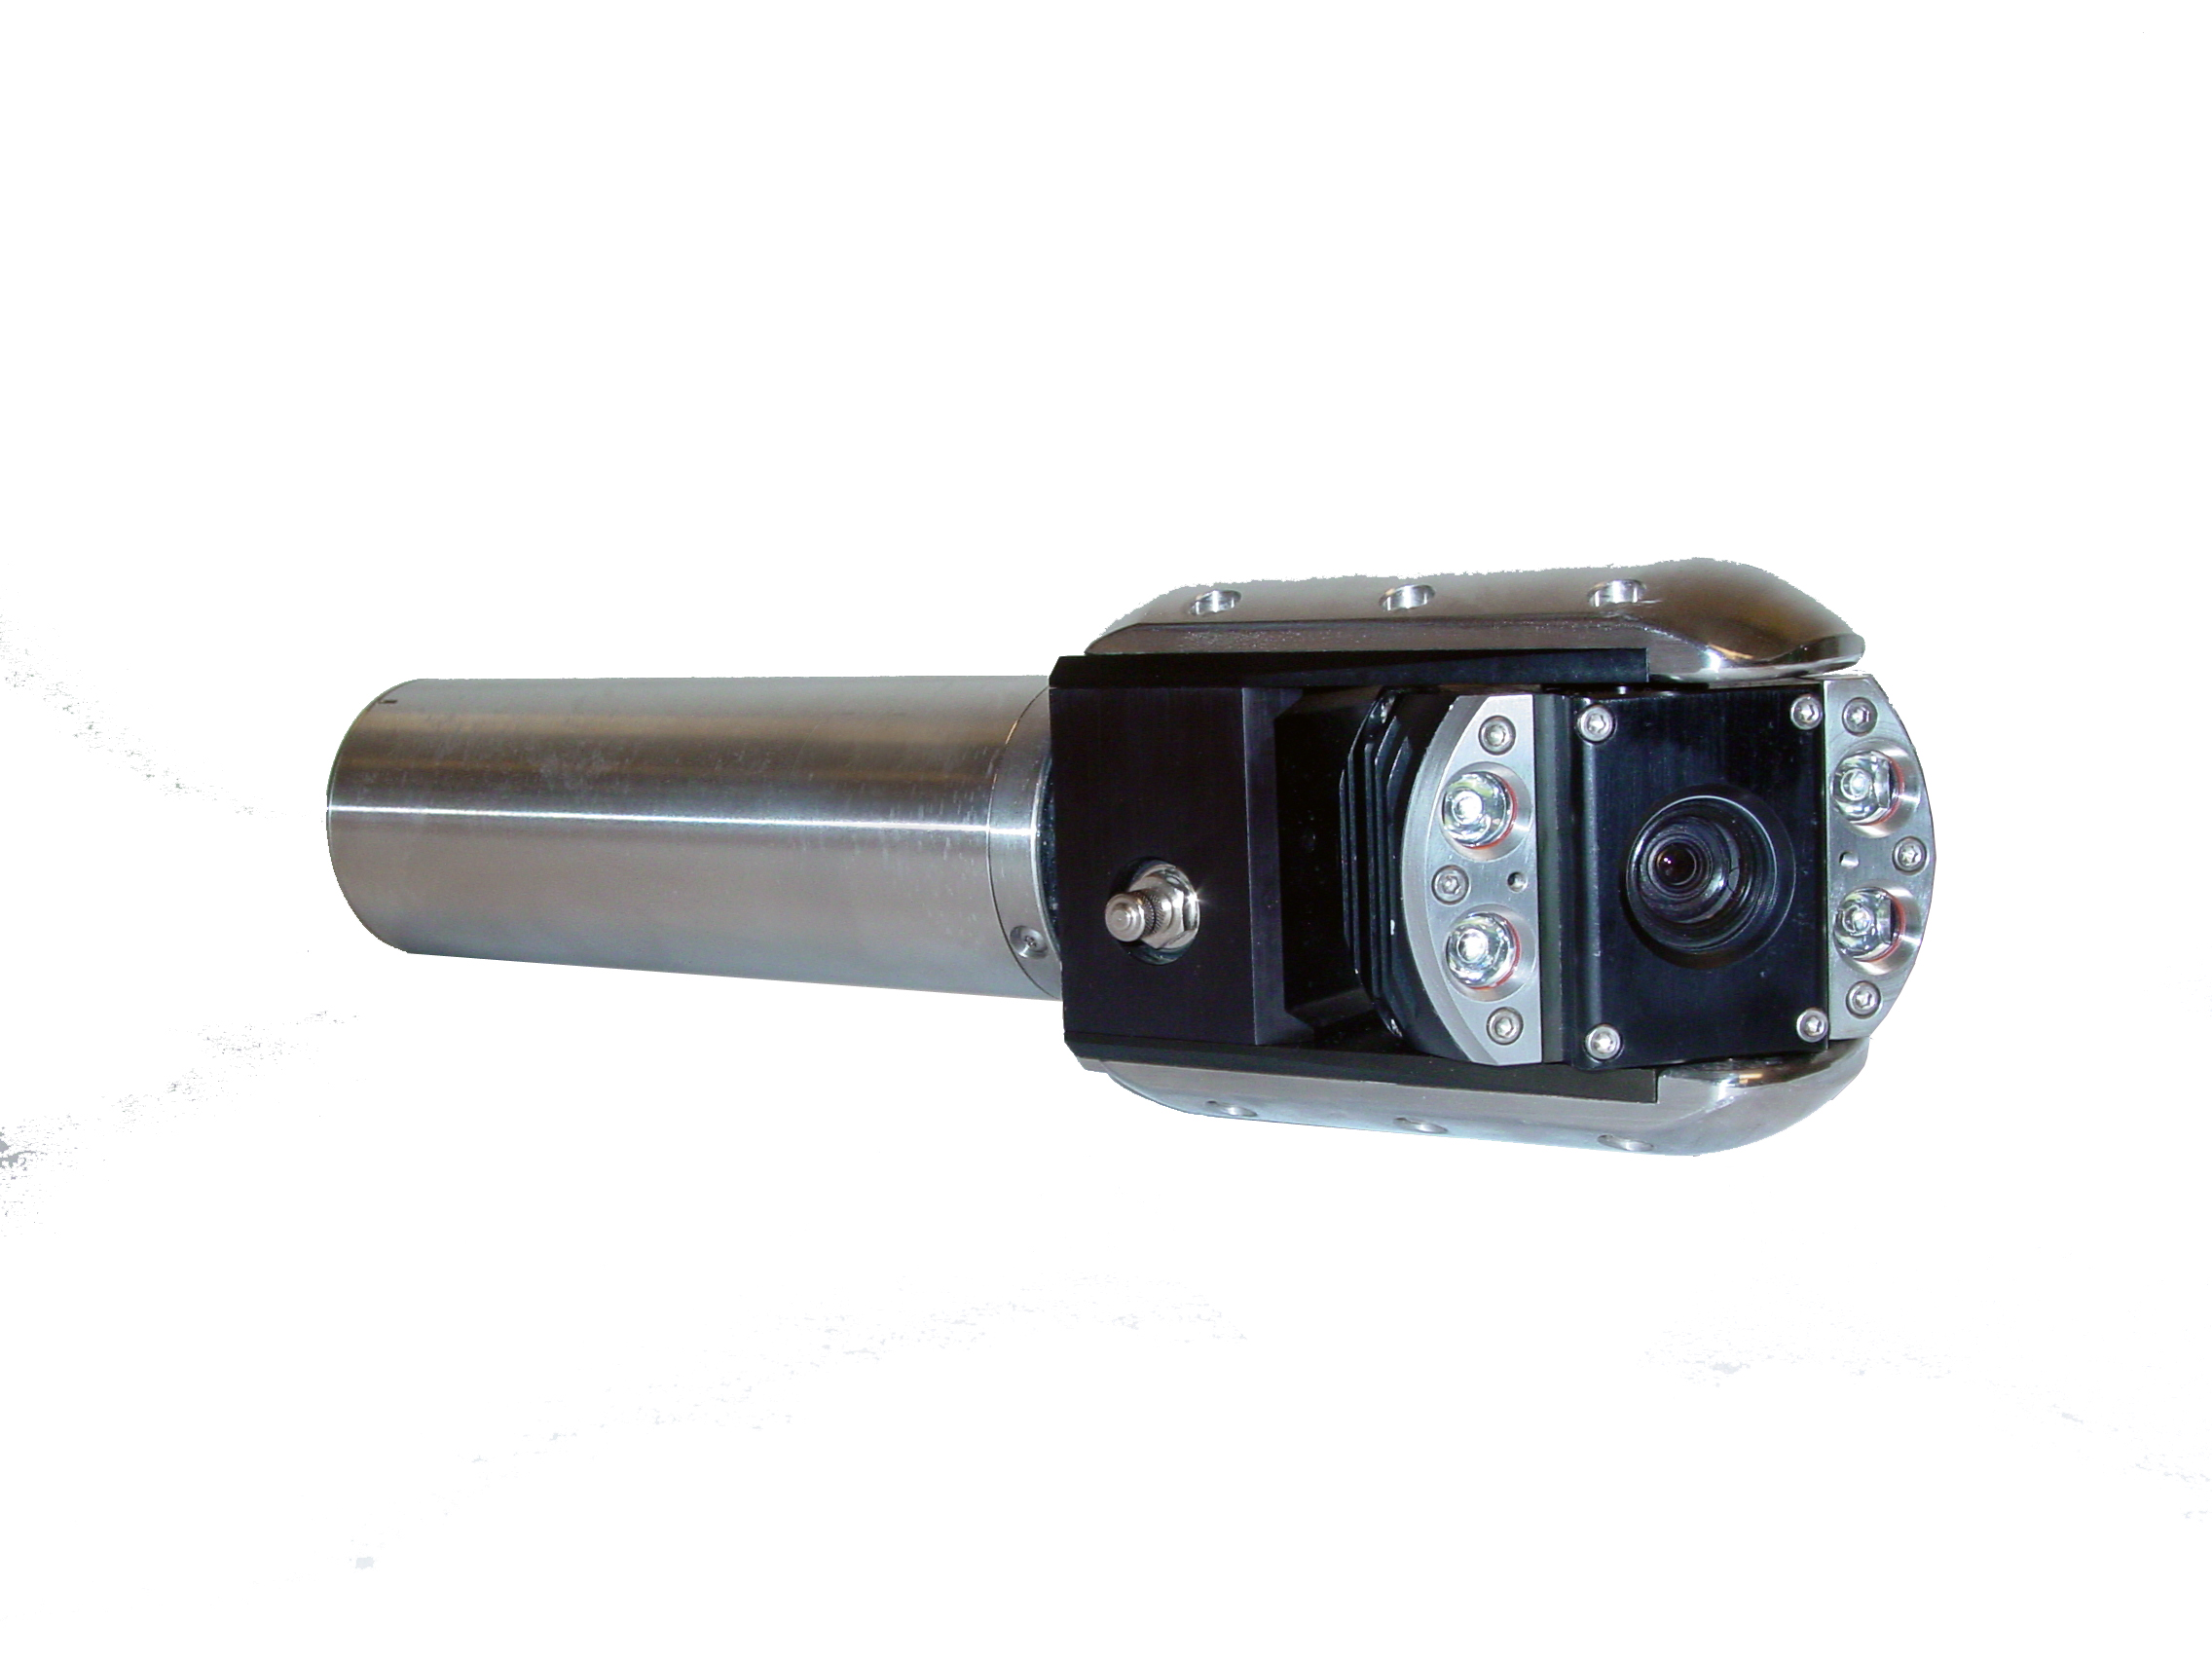 OZIII Pan Tilt & Optical Zoom Camera